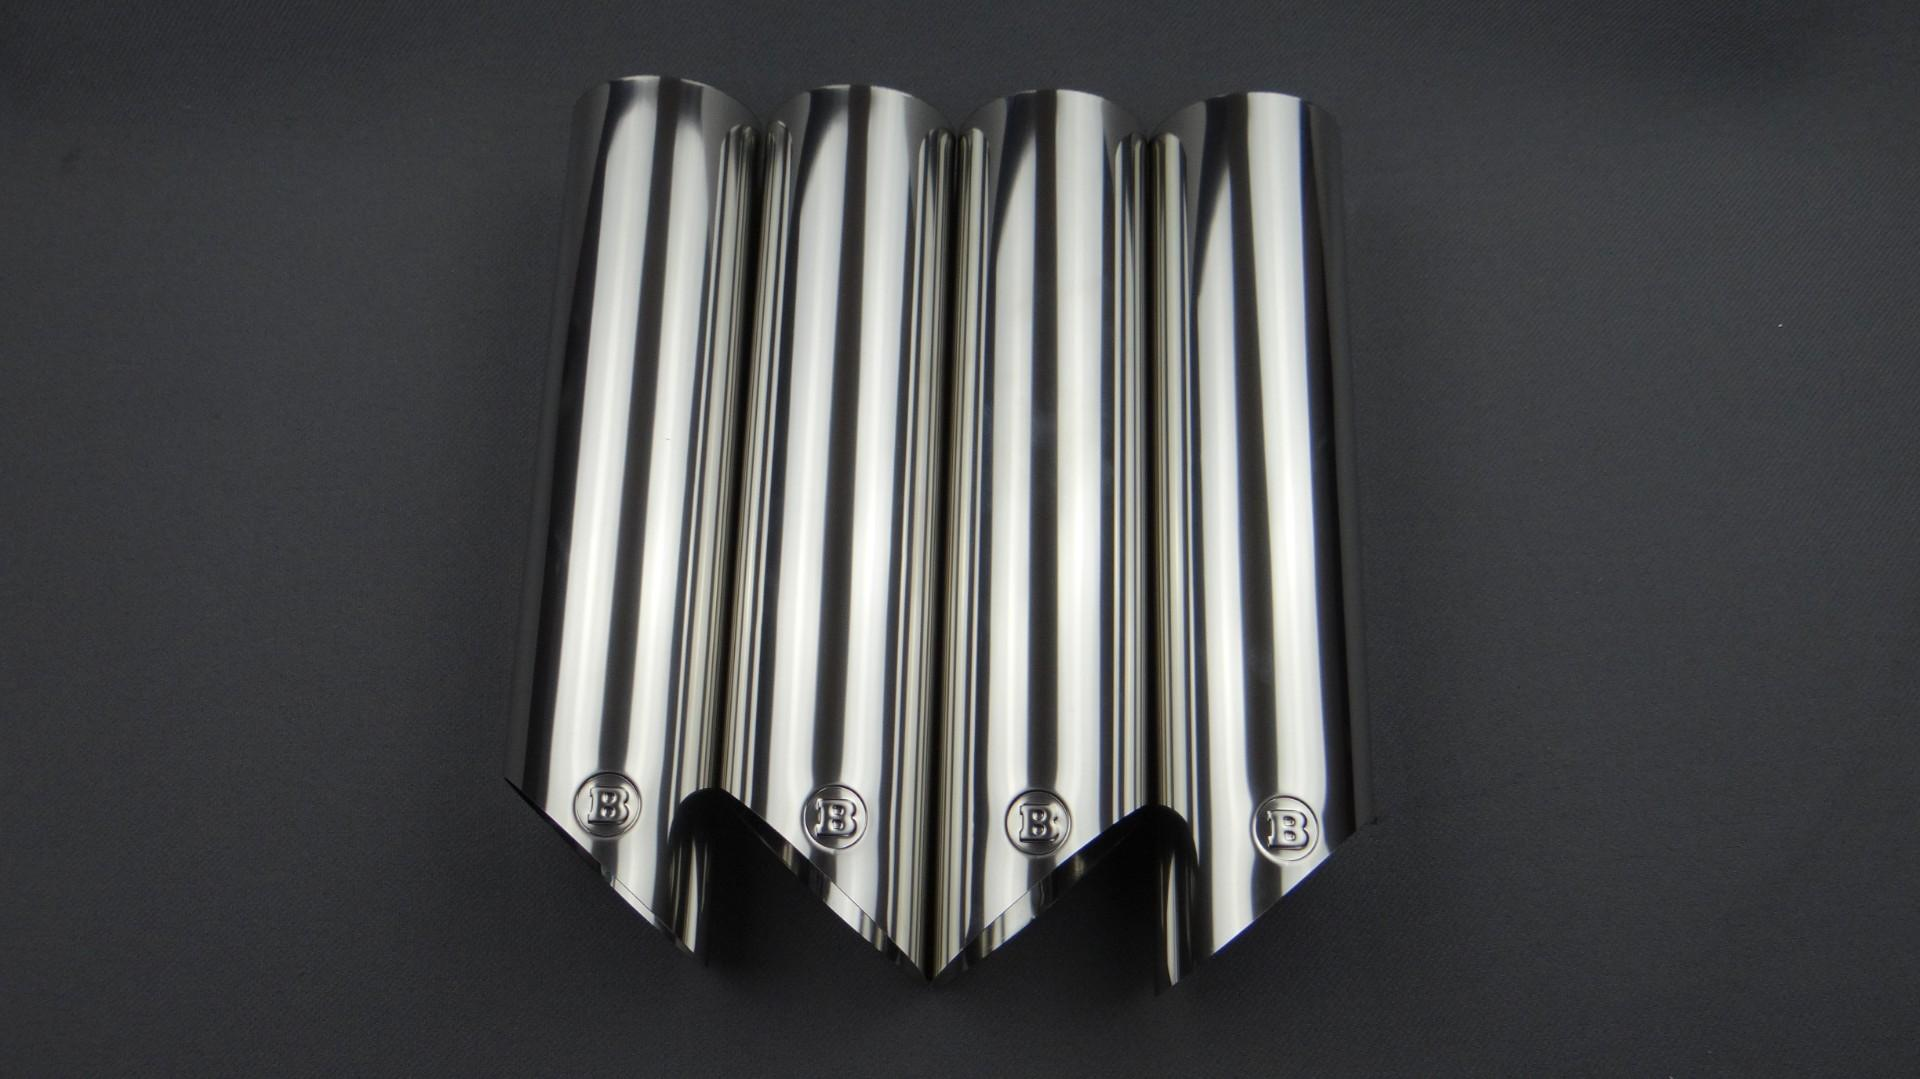 Mercedes-Benz G-Class Stainless Steel Chrome Exhaust Pipes Tips 4pcs